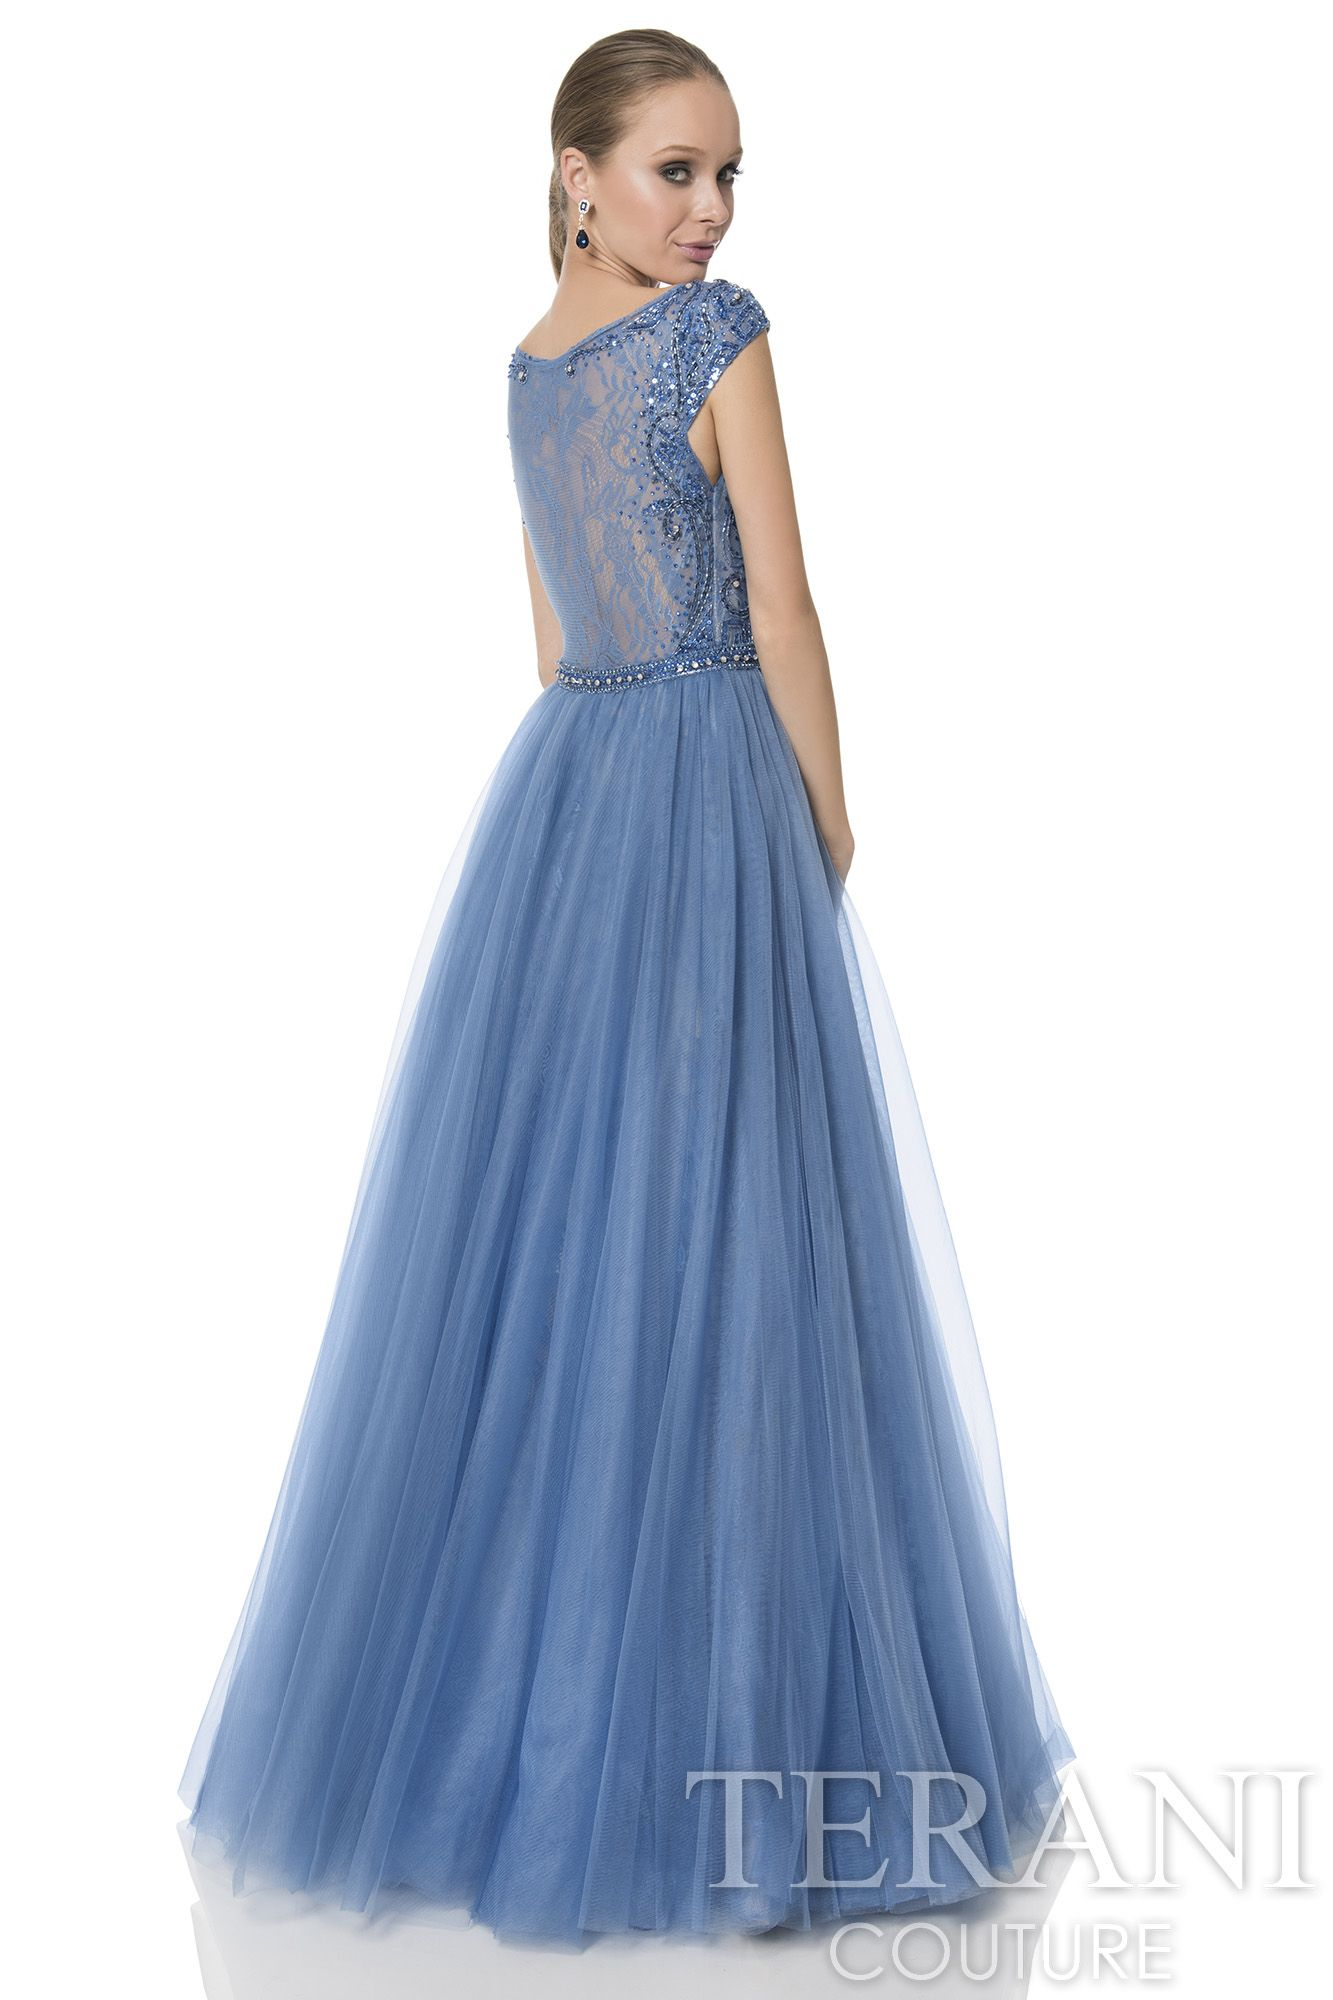 Cap+sleeve+prom+gown+with+illusion+neck+and+back.+This+prom+dress+is ...